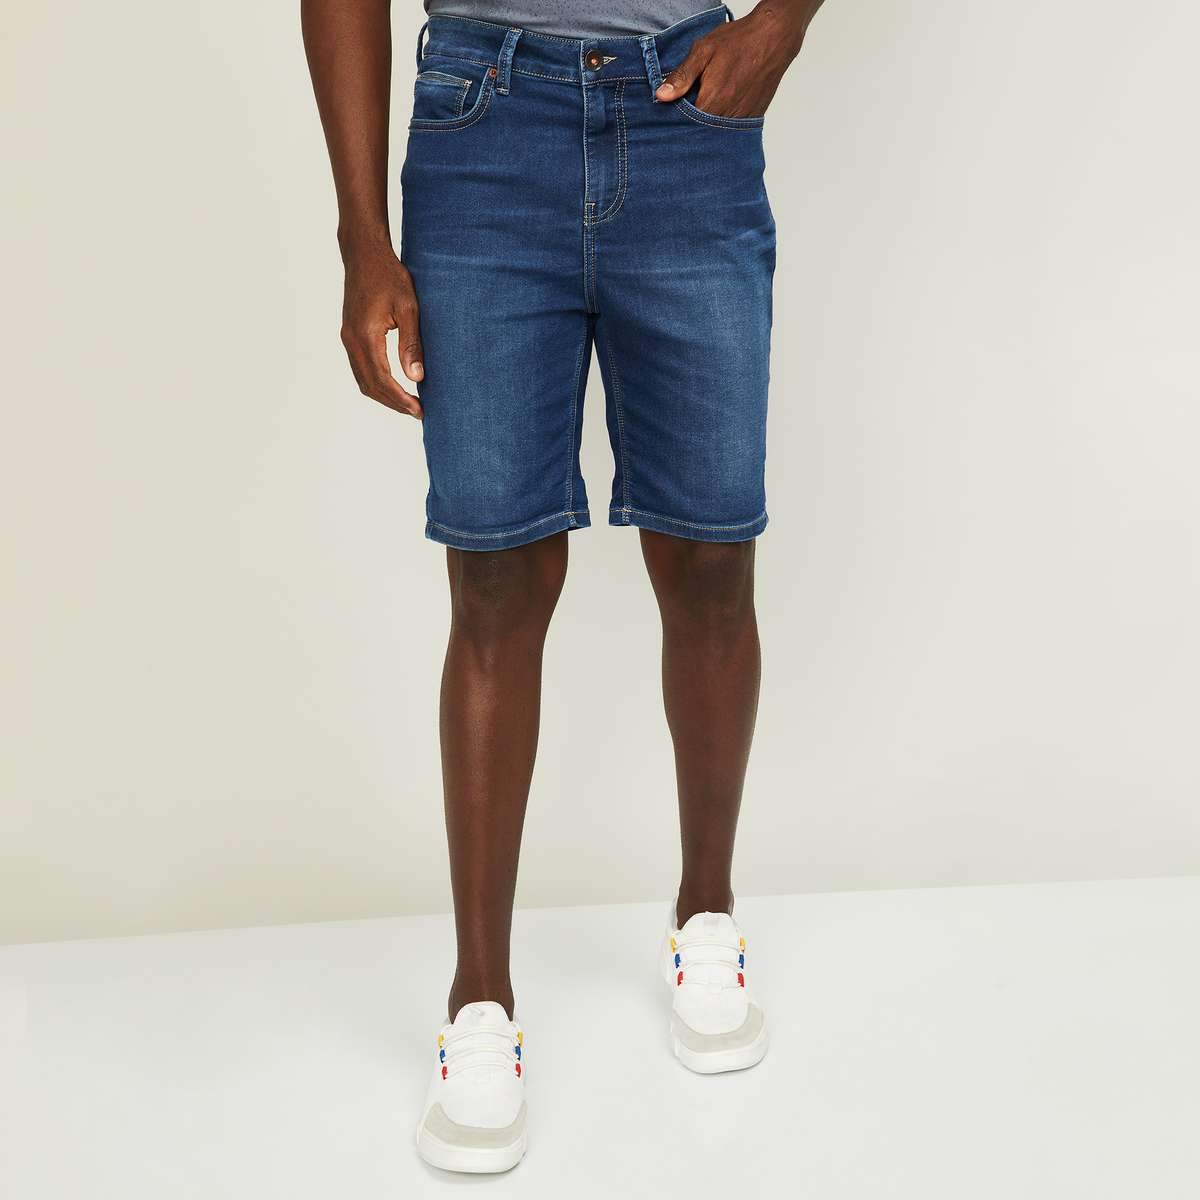 2.UNITED COLORS OF BENETTON Men Stonewashed Slim Fit Denim Shorts